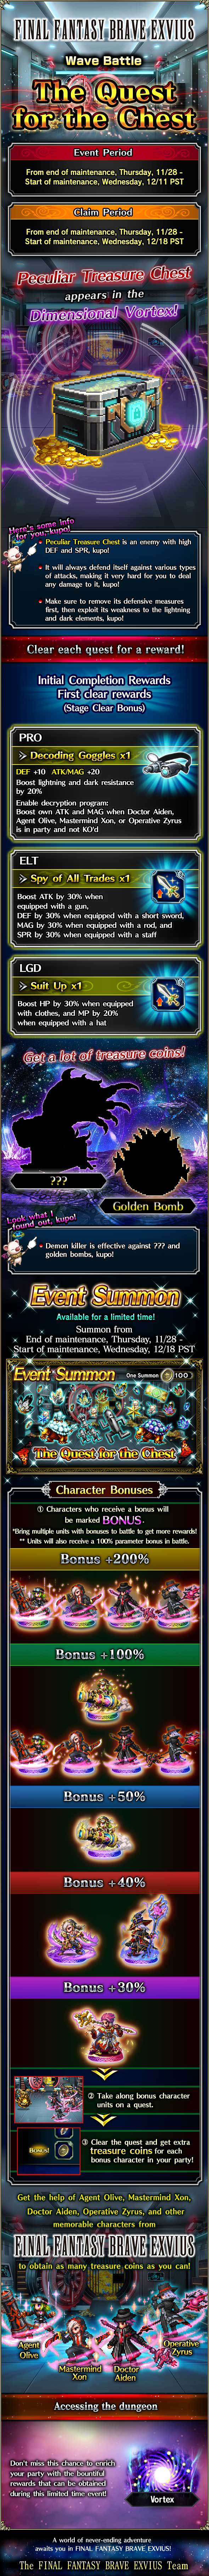 Evenement FFBE - La quête du coffre (?) - du 28/11 au 12/12/19 20191125TheQuestforTheChest